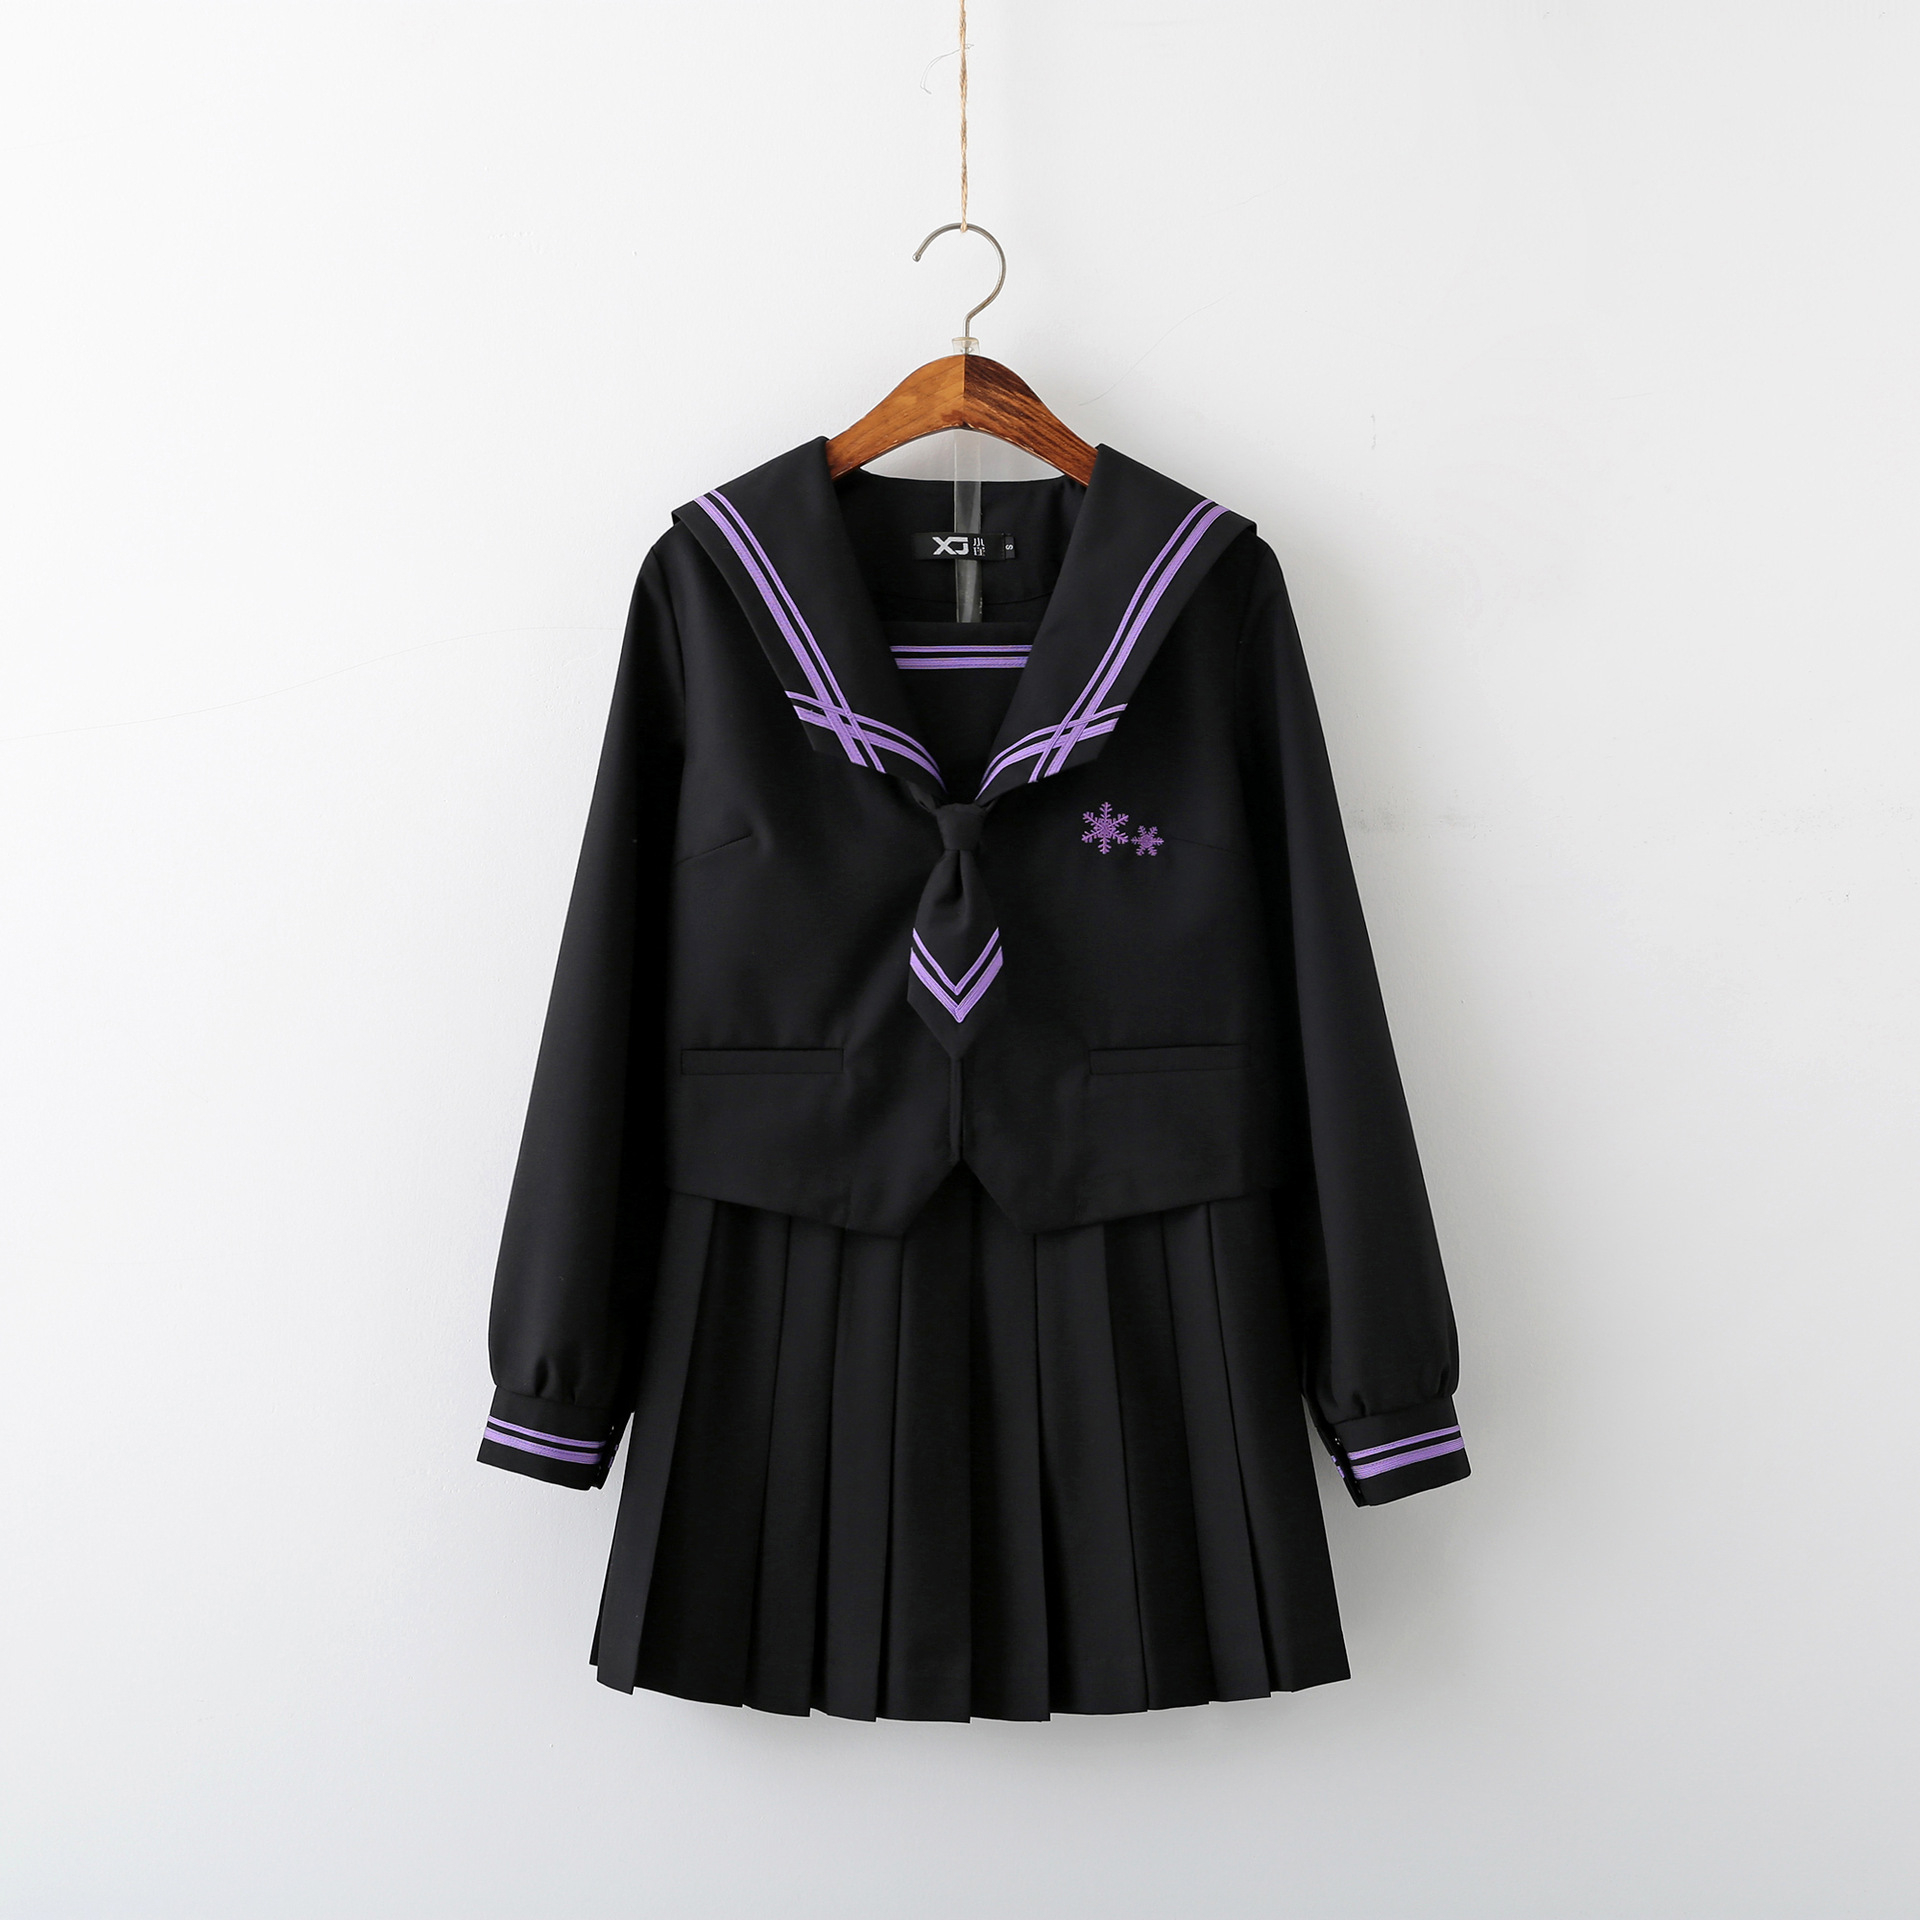 Japanese Fashion School JK Uniform Japones Sailor Fuku Uniforme Japonais School Girl Students Costume Tops Pleated Skirt